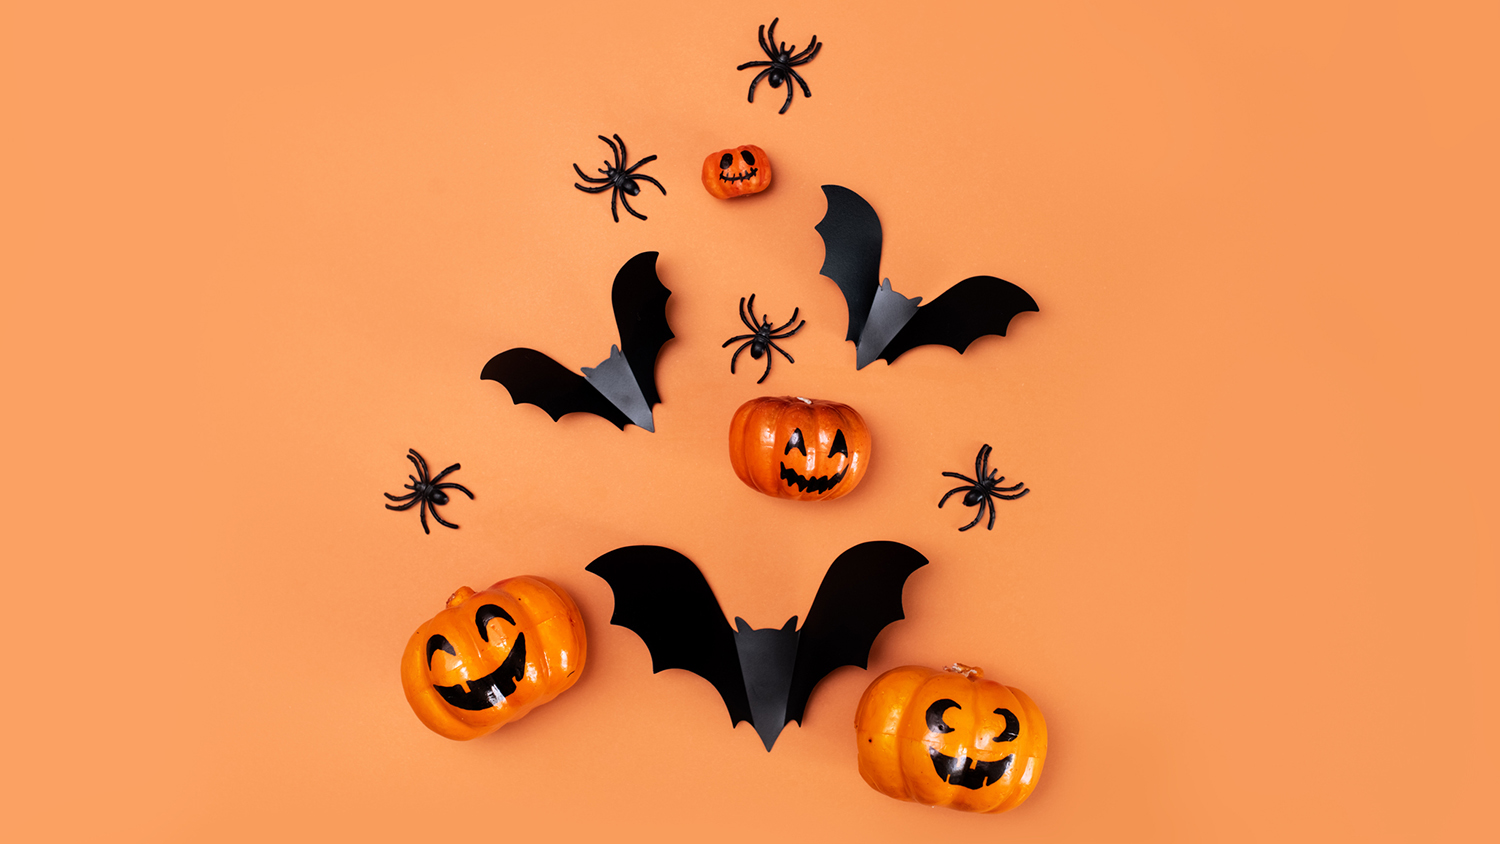 13 Spooky Halloween Decor Ideas For 2020 That Are Sure To Bewitch